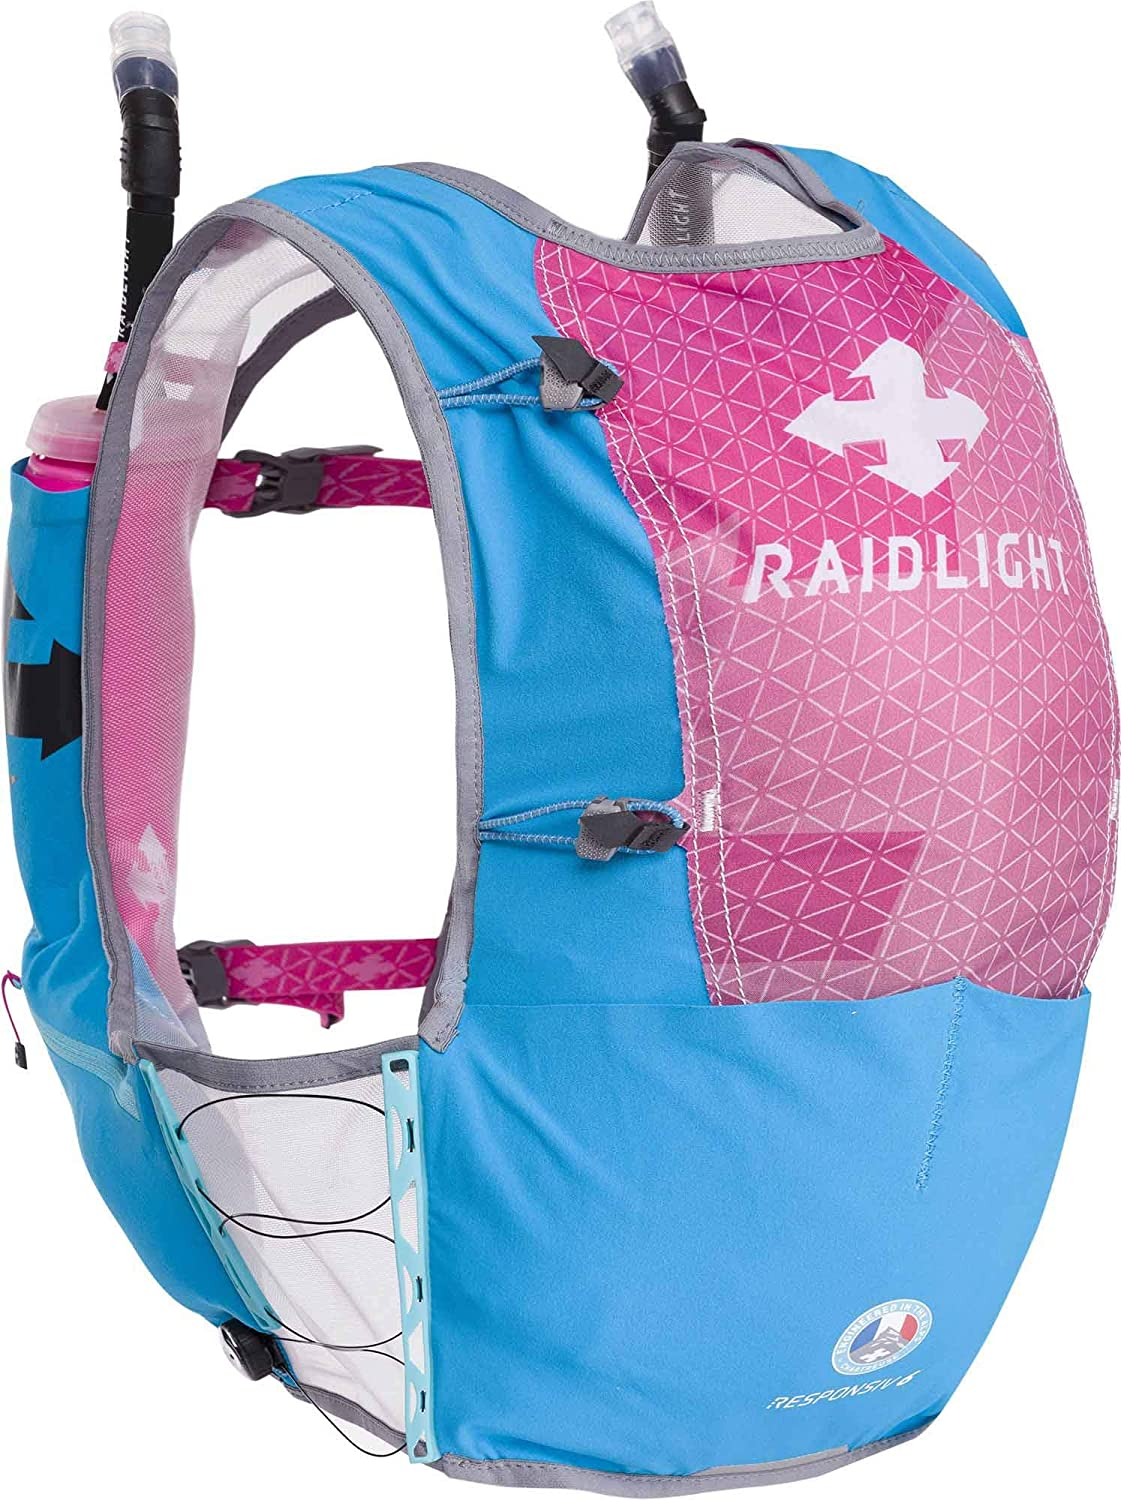 RaidLight Womens Responsiv All stores are sold Vest 6L Blue Phoenix Mall W Pink Small